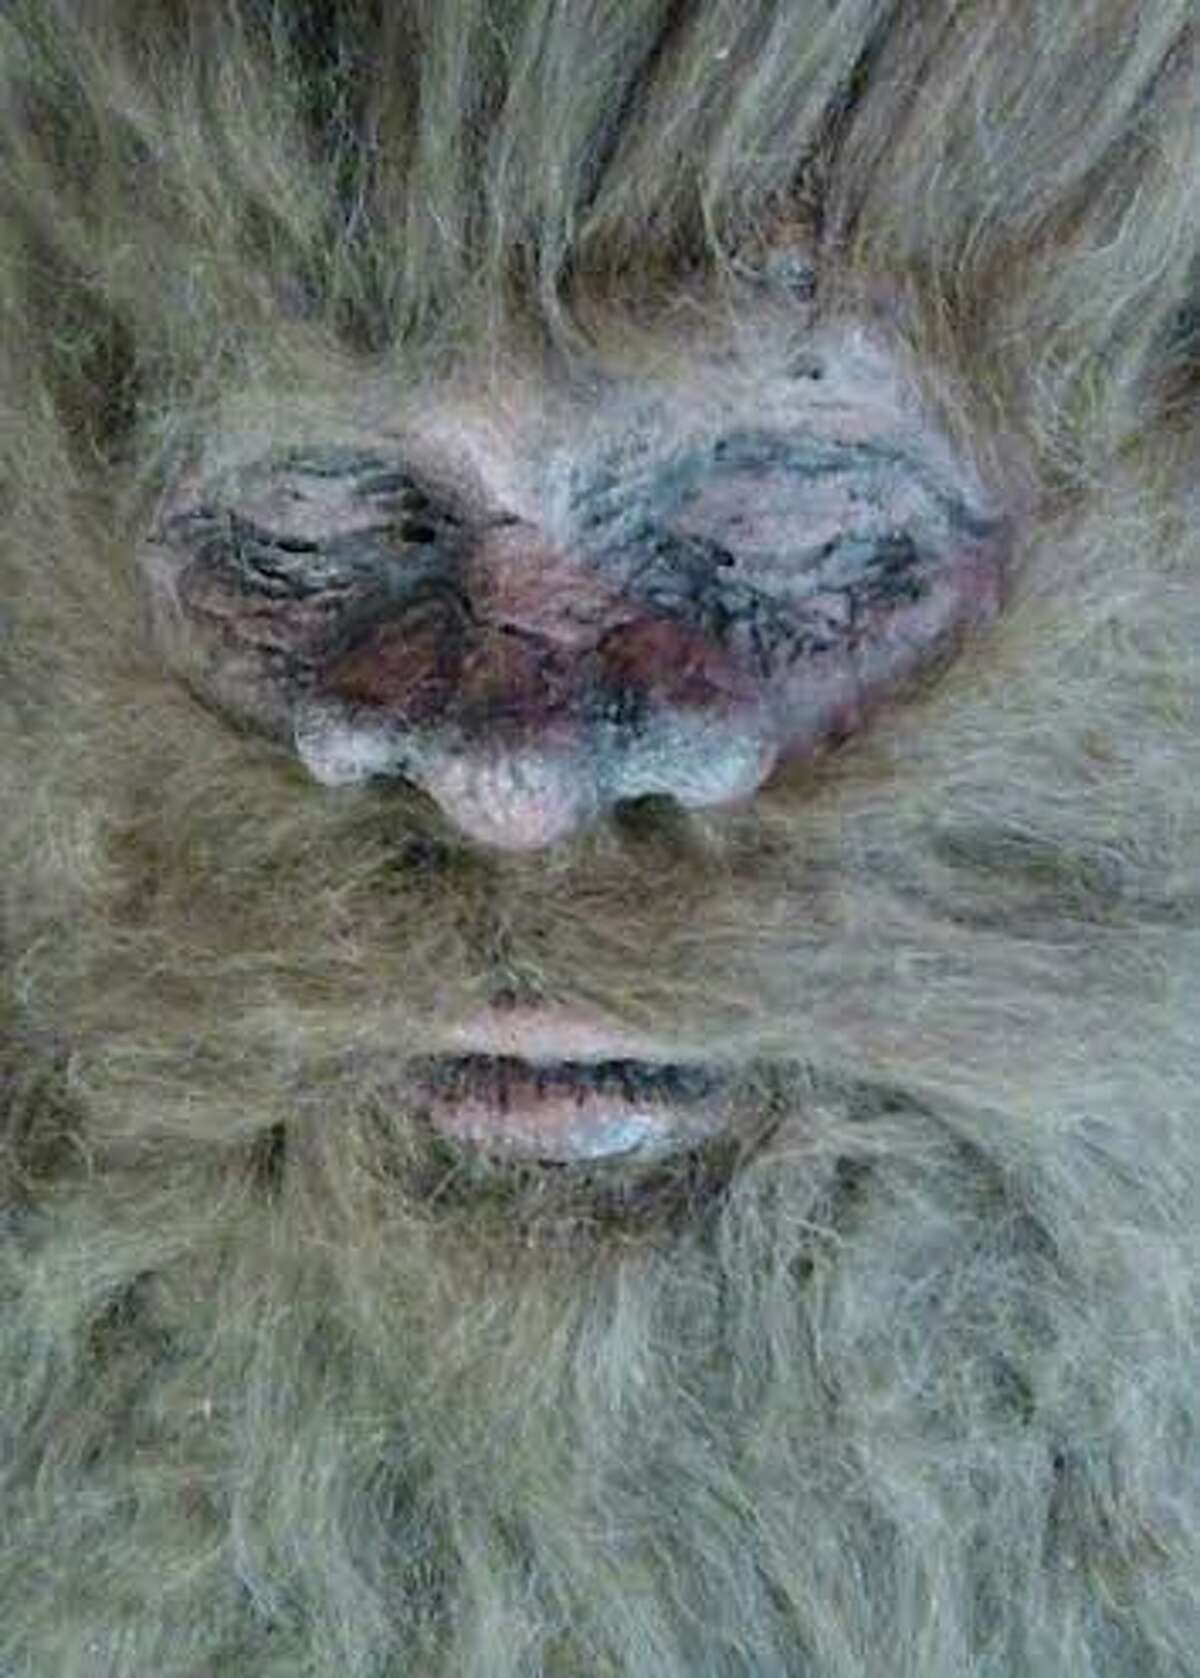 Rick Dyer, 36, says he killed an 8-foot-tall Bigfoot in San Antonio in 2012 with a 30-06 rifle after he lured